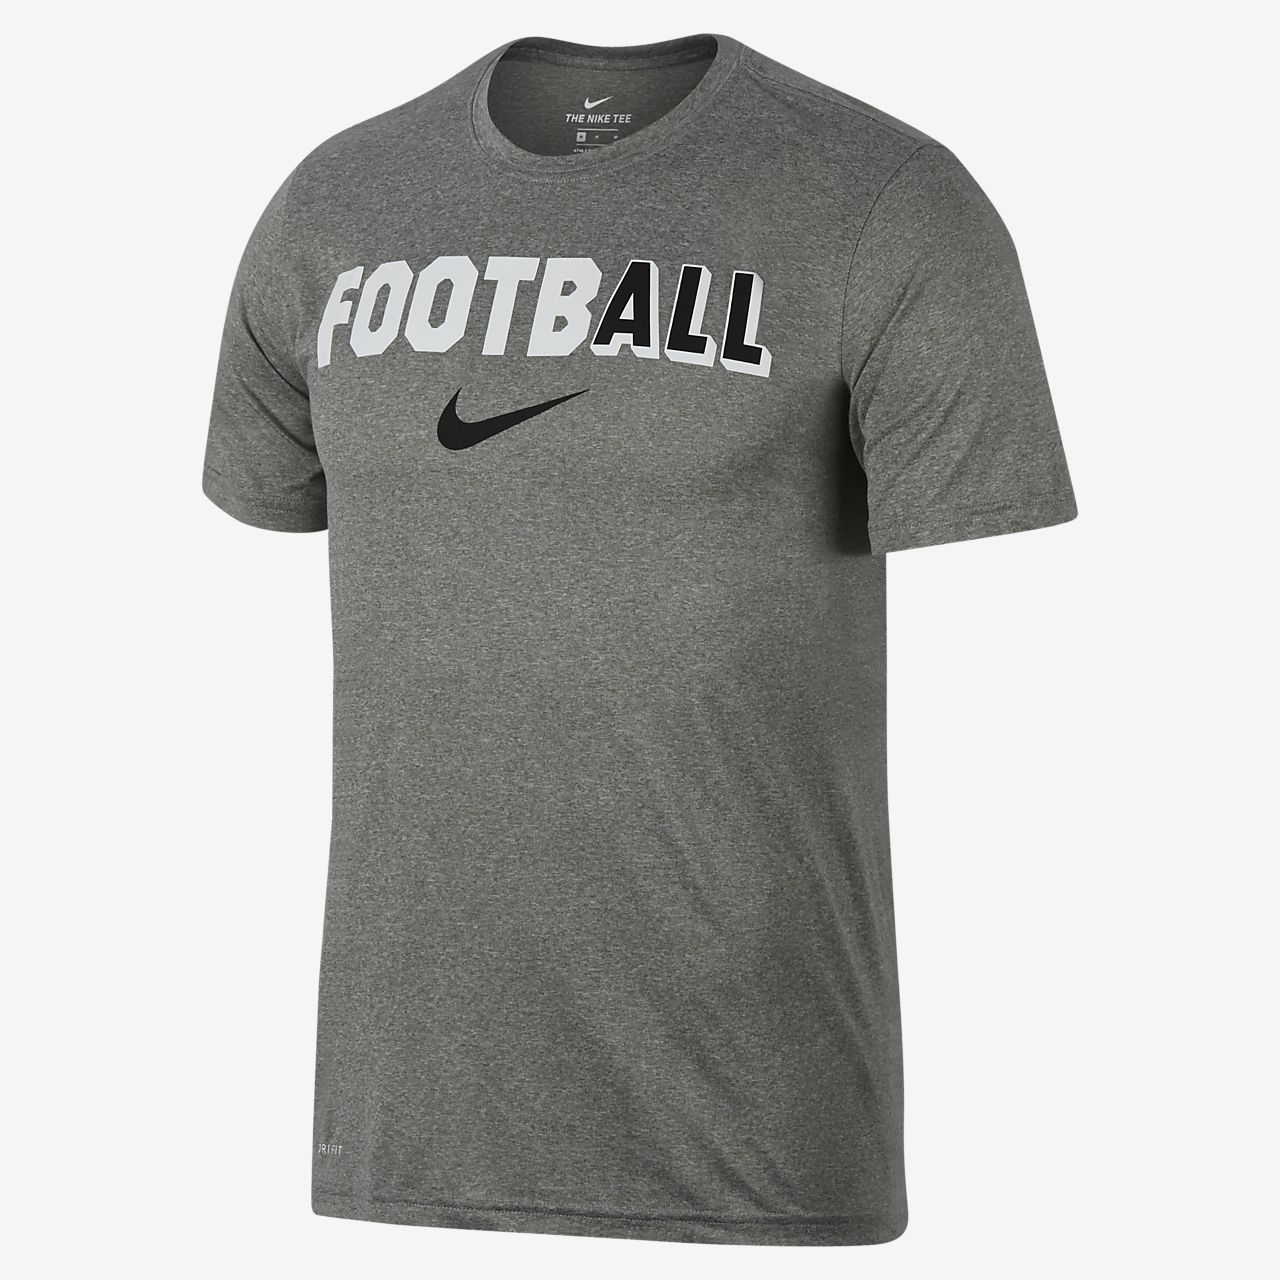 Nike Dri-FIT Men's Football T-Shirt. Nike.com